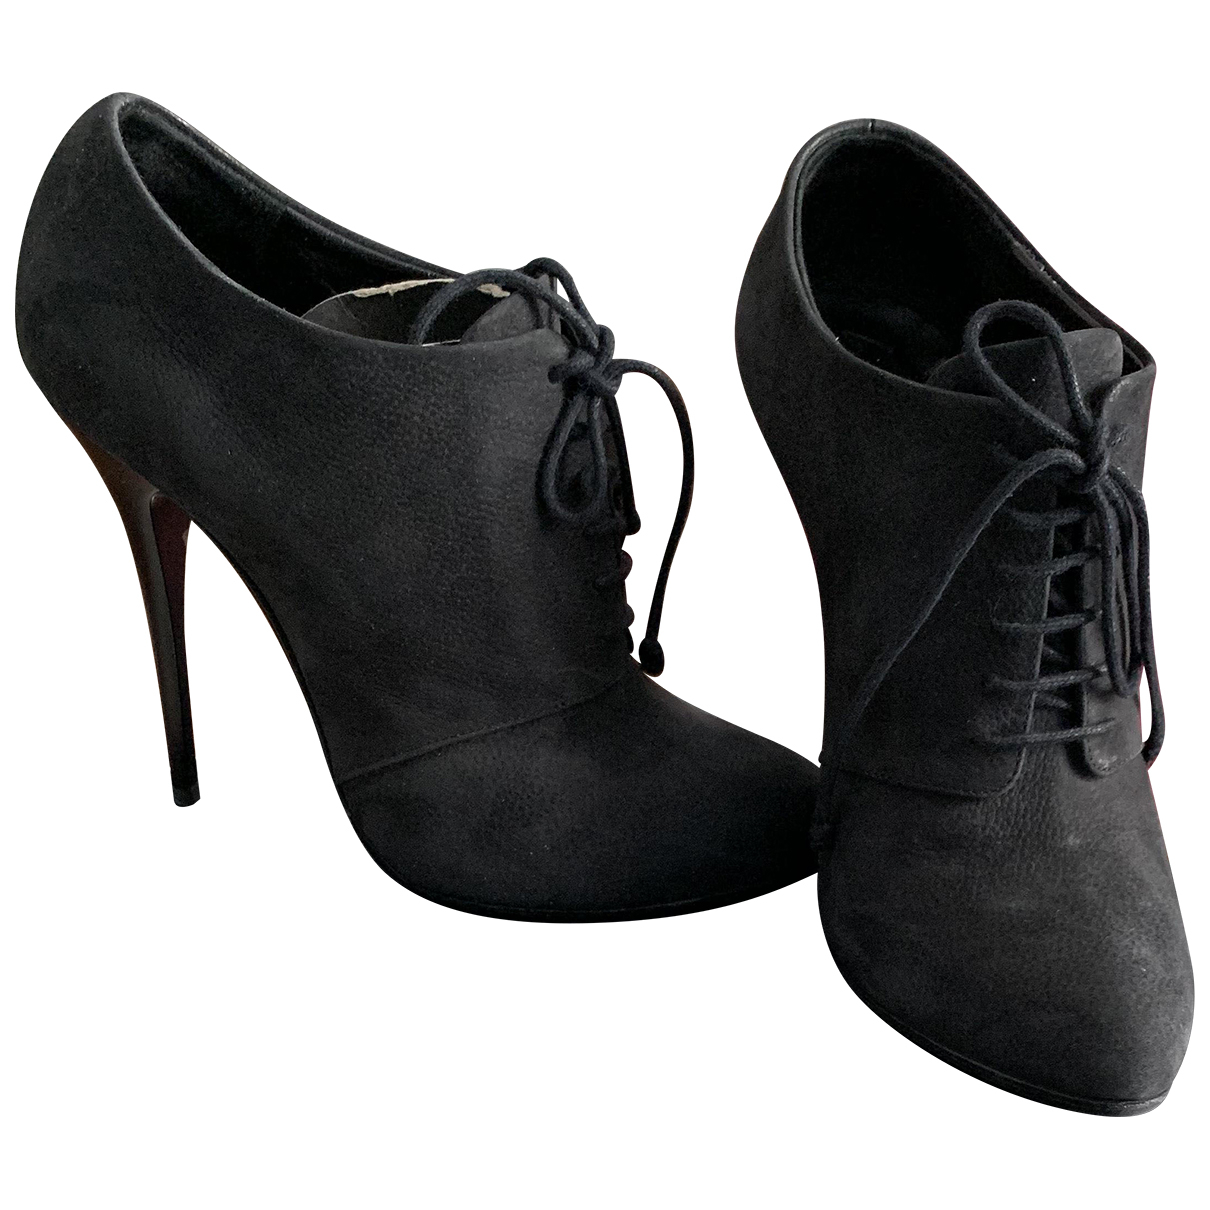 Giuseppe Zanotti \N Anthracite Suede Ankle boots for Women 38 EU